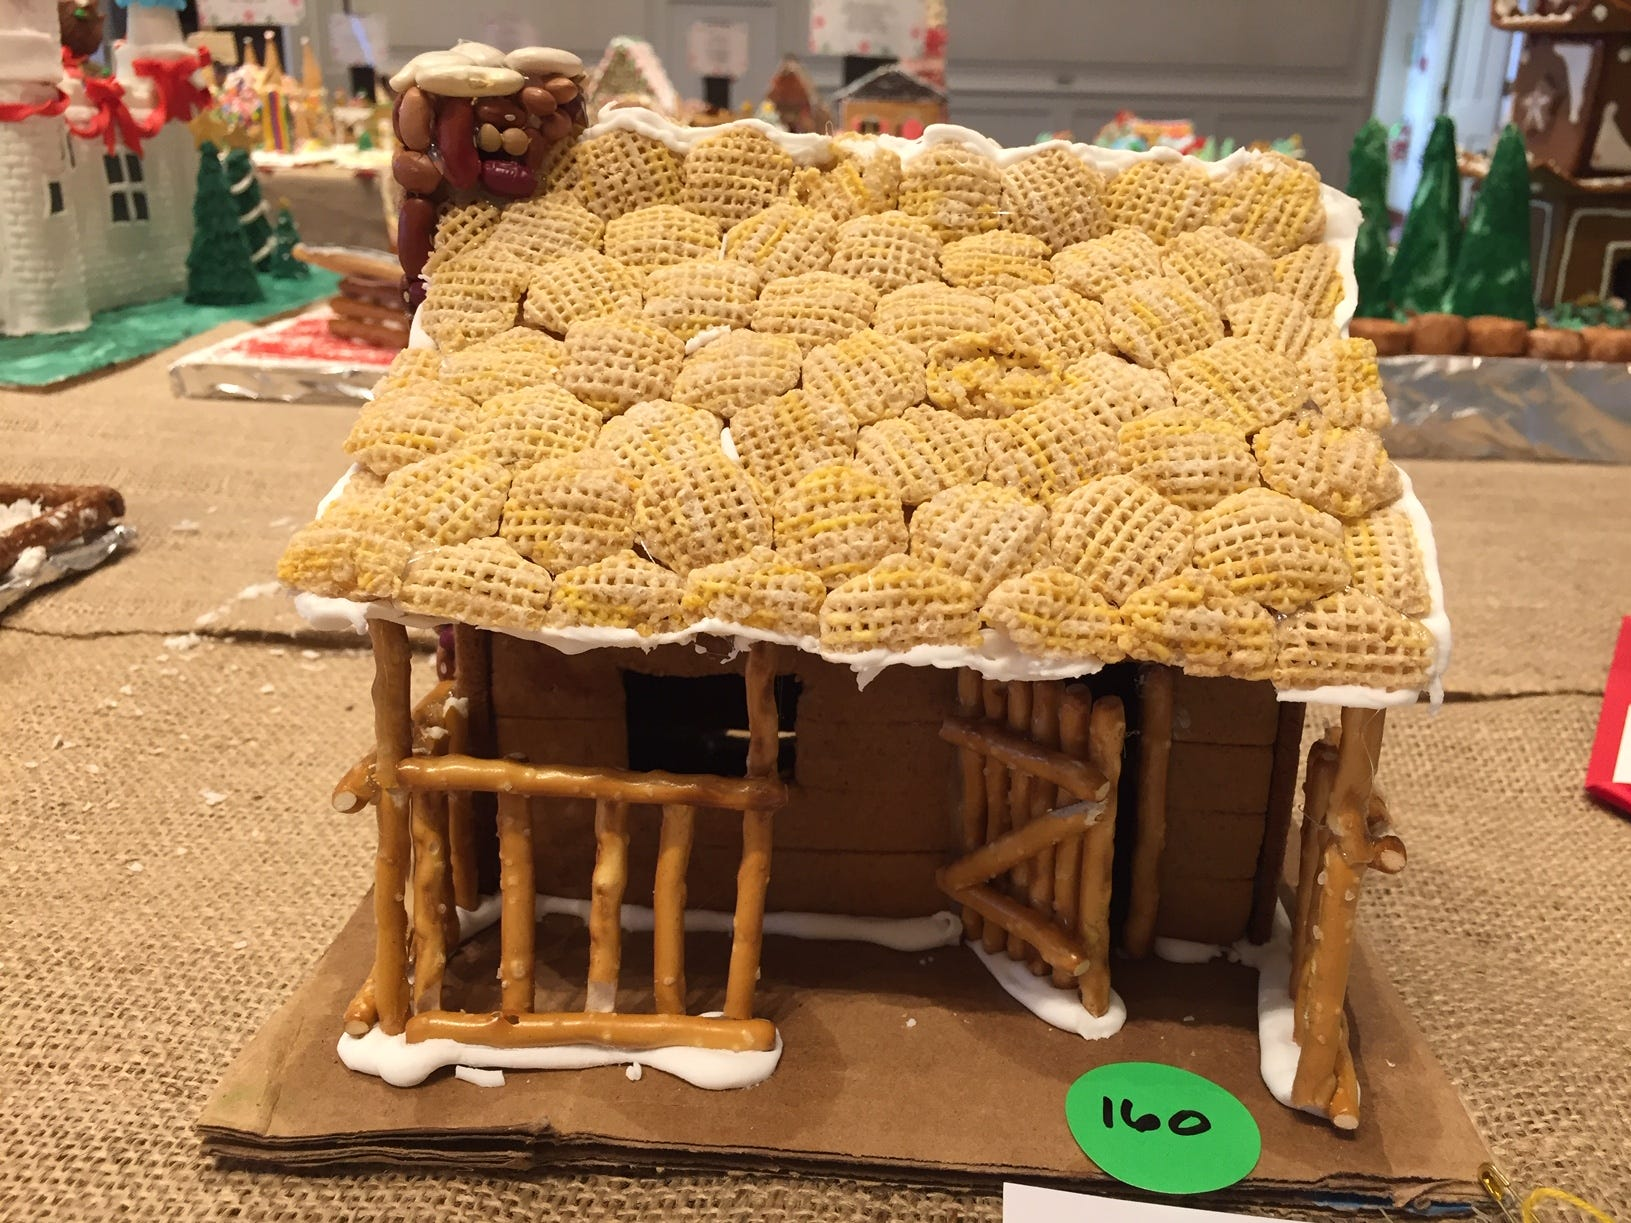 """Checkers Camp"" by Willieeee Co. of Morristown at the Gingerbread Wonderland at the Frelinghuysen Arboretum."